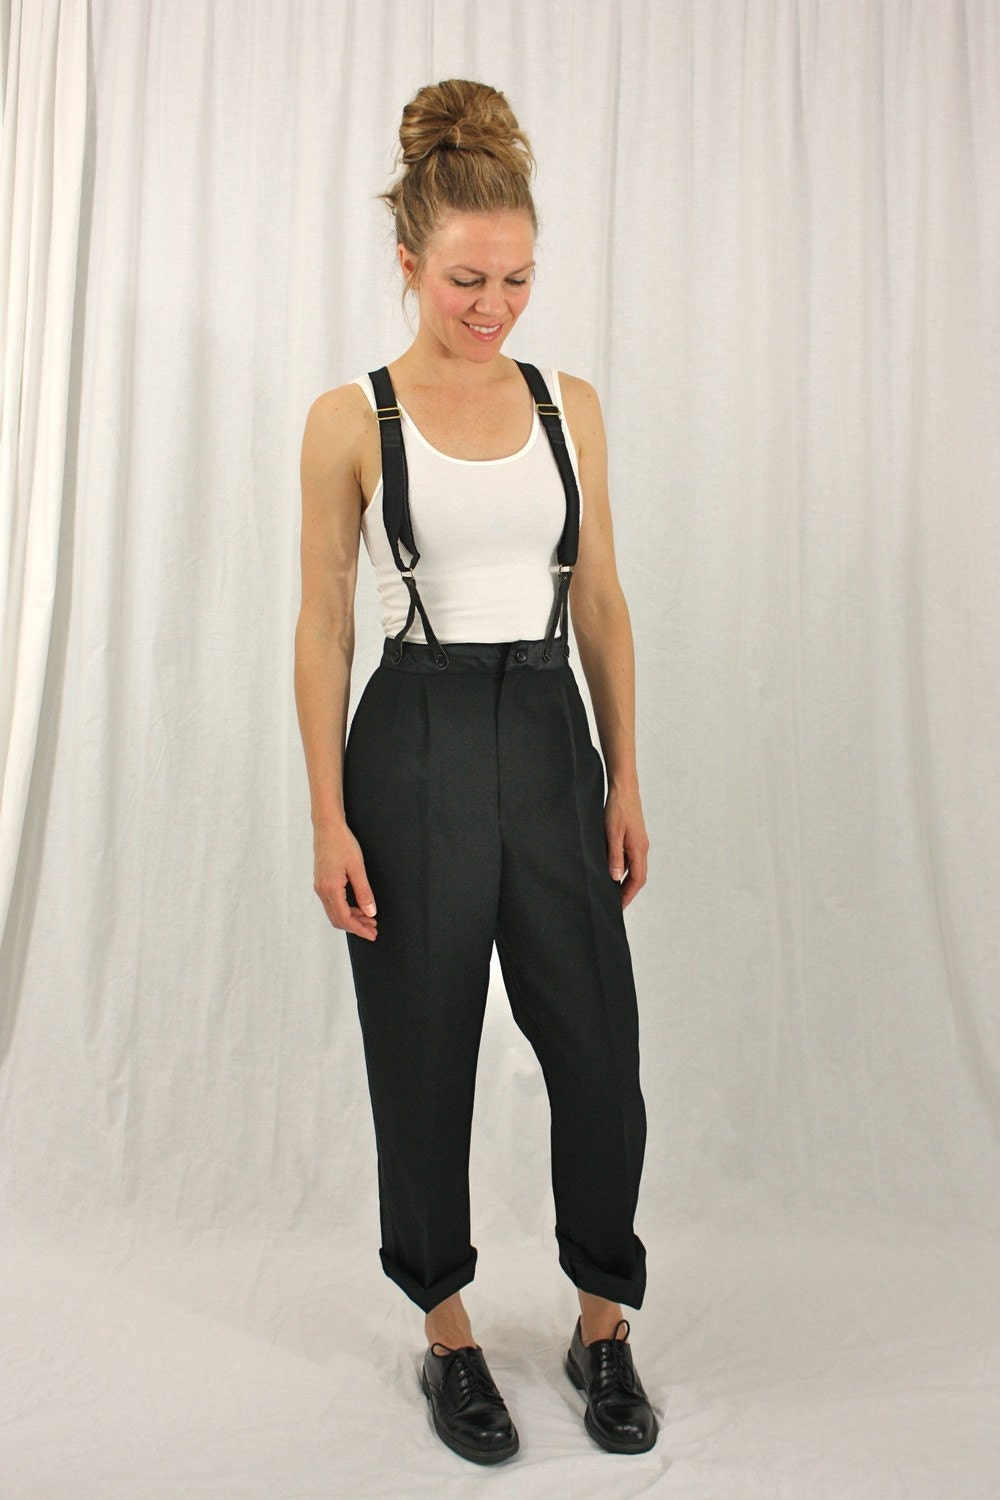 One Piece Wide Leg High Rise Palazzo suspender Pants Jumpsuit. Bluewolfsea Womens Sexy 2 Piece Bodycon Outfits Letter Print Bandeau Crop Top and Suspender Pants Jumpsuits Overalls. by Bluewolfsea. $ $ 25 99 Prime. FREE Shipping on eligible orders. Some sizes/colors are Prime eligible.